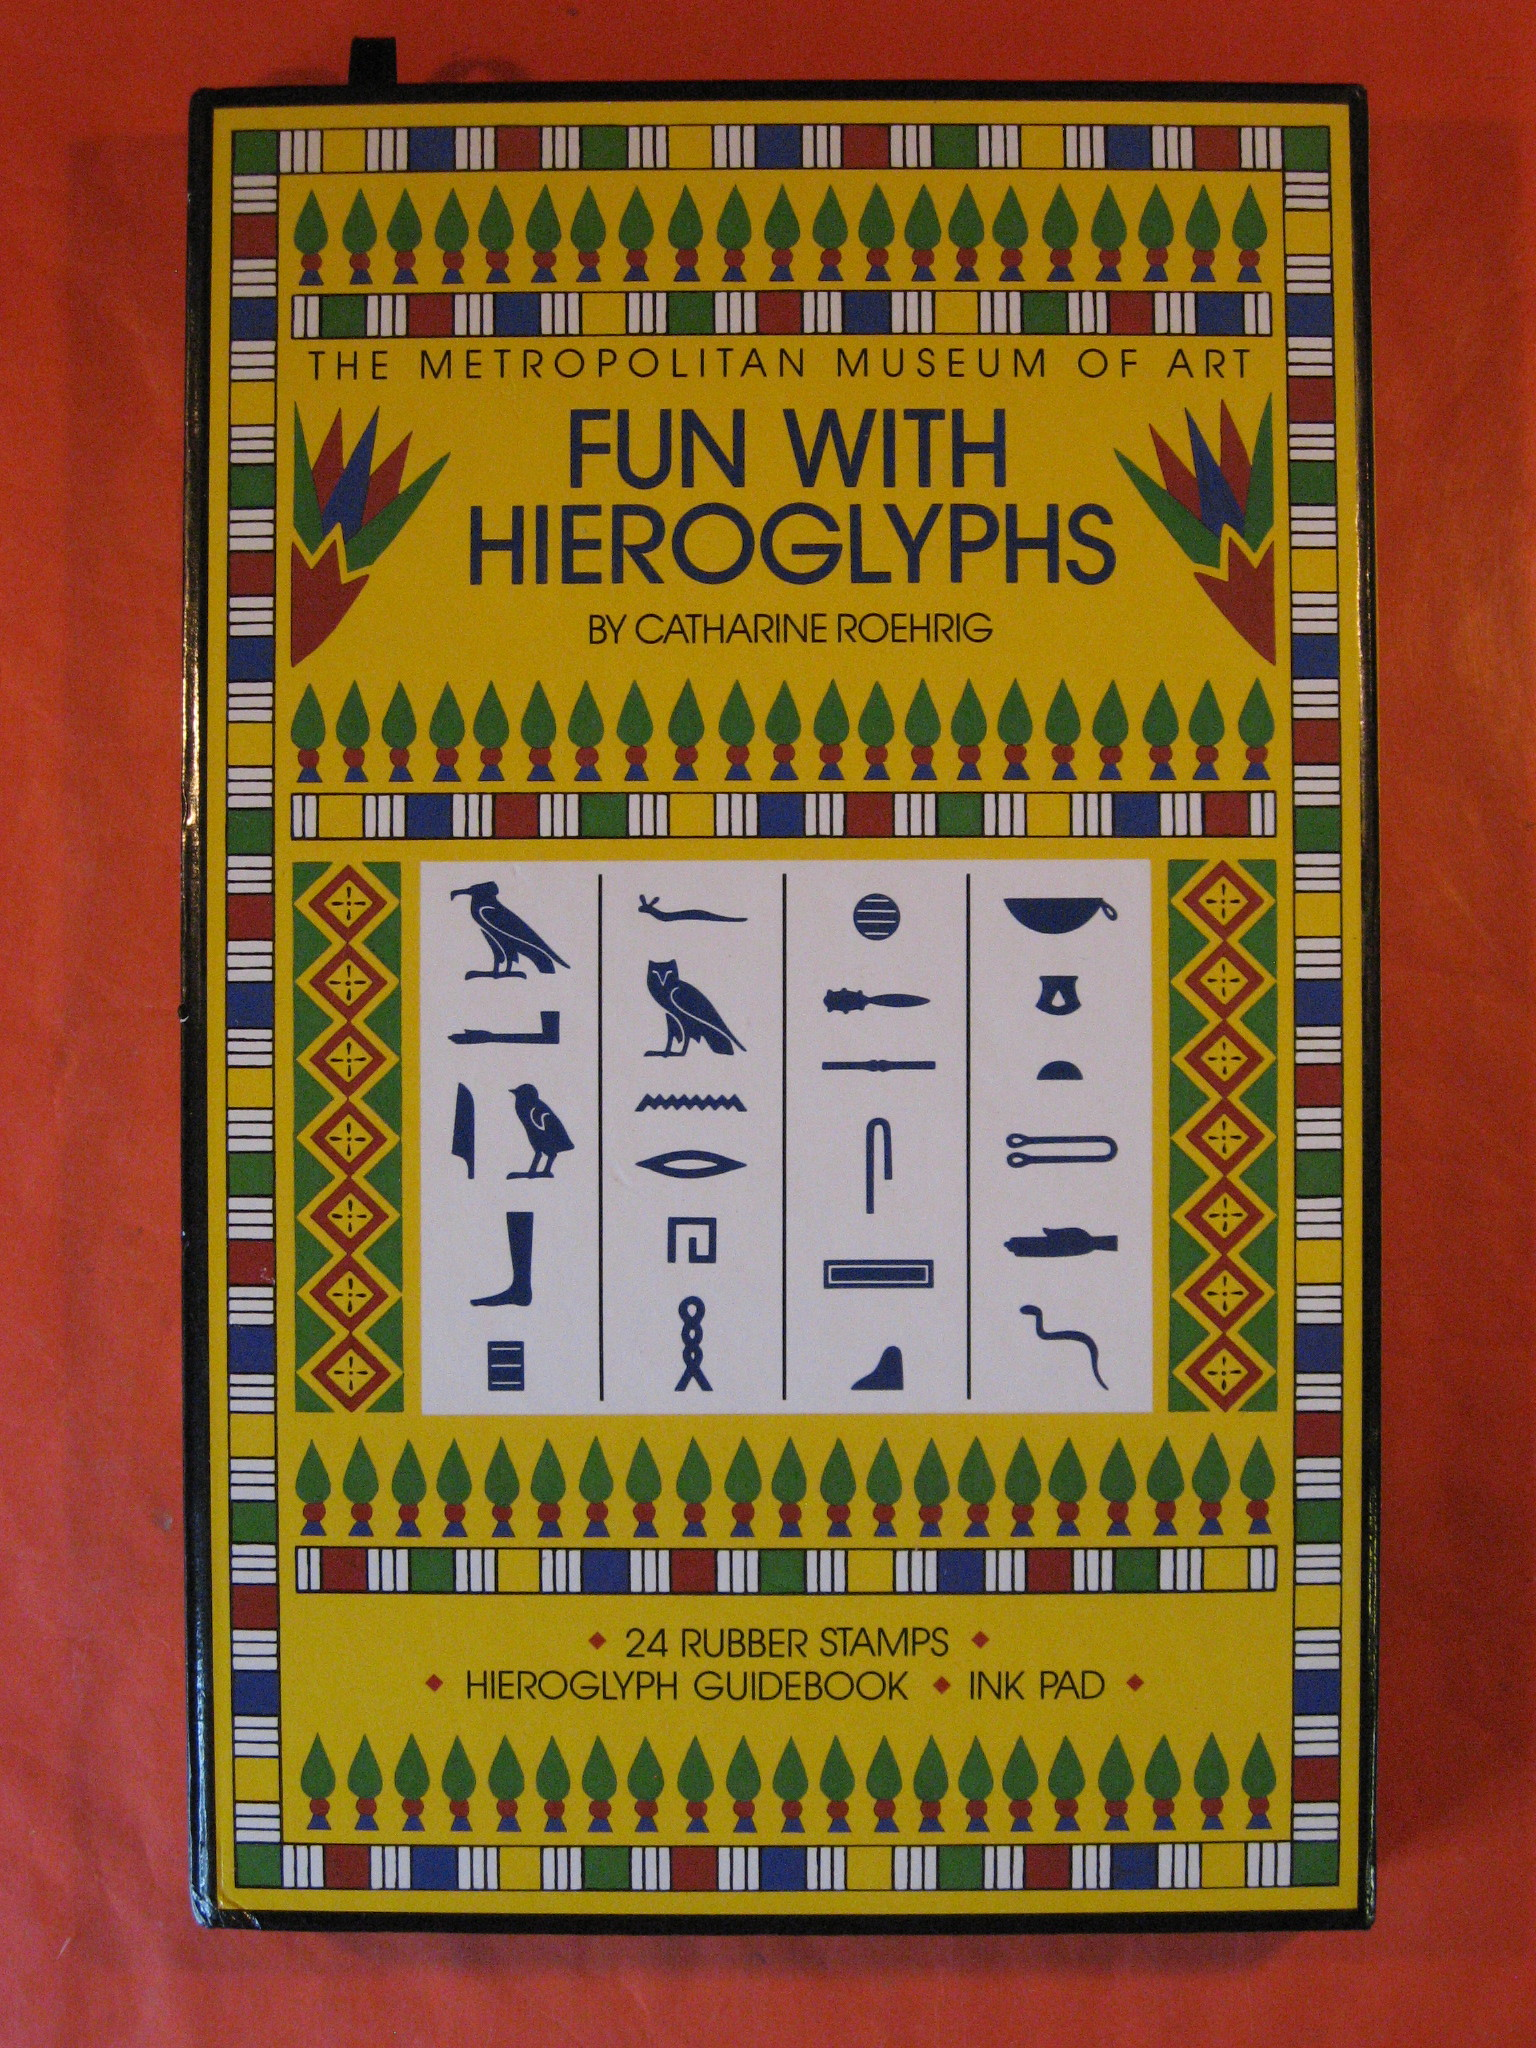 Fun with Hieroglyphs: 24 Rubber Stamps, Hieroglyph Guidebook, Ink Pad (Box Set) (The Metropolitan Museum of Art), Catharine Roehrig